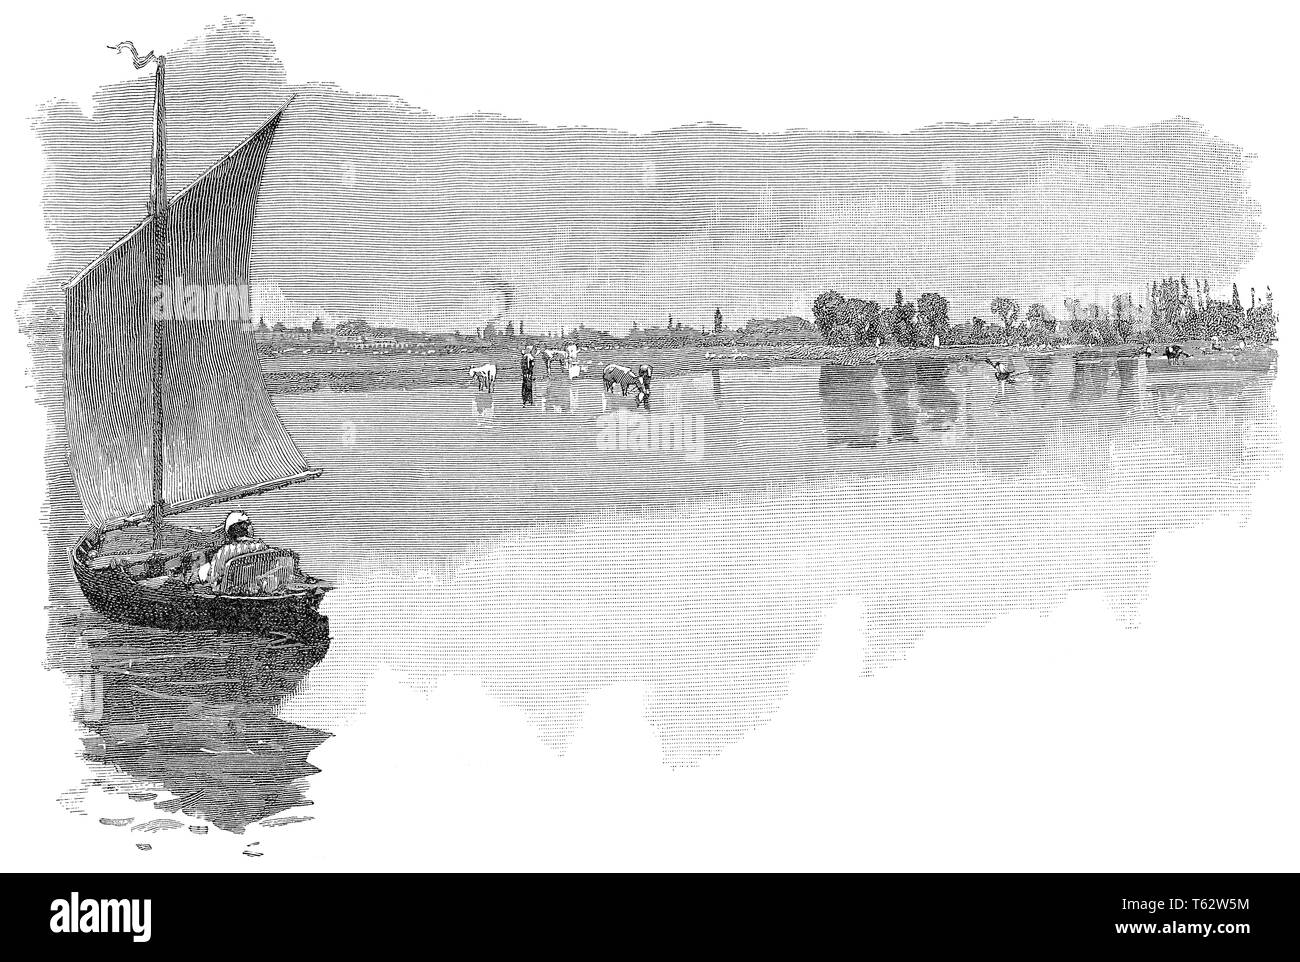 1891 engraving of the River Thames at Godstow, Oxfordshire, showing the city of Oxford in the distance. - Stock Image